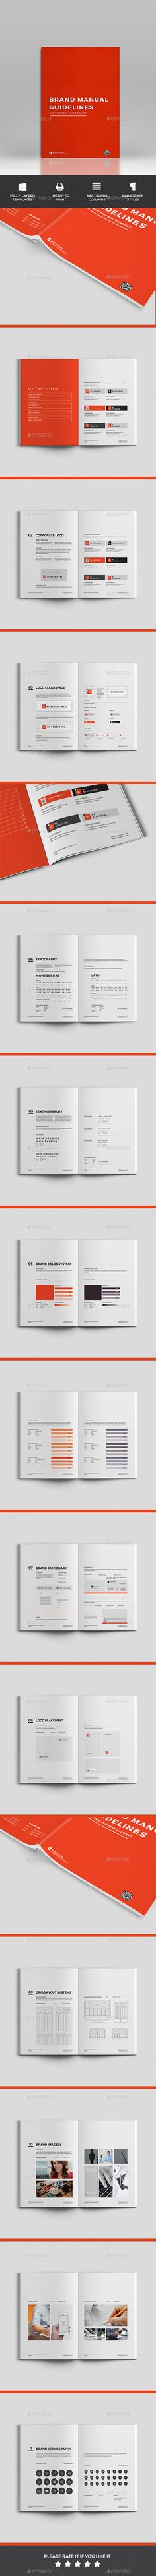 Brand Manual Template InDesign INDD - 48 Pages, A4 & US Letter size ...